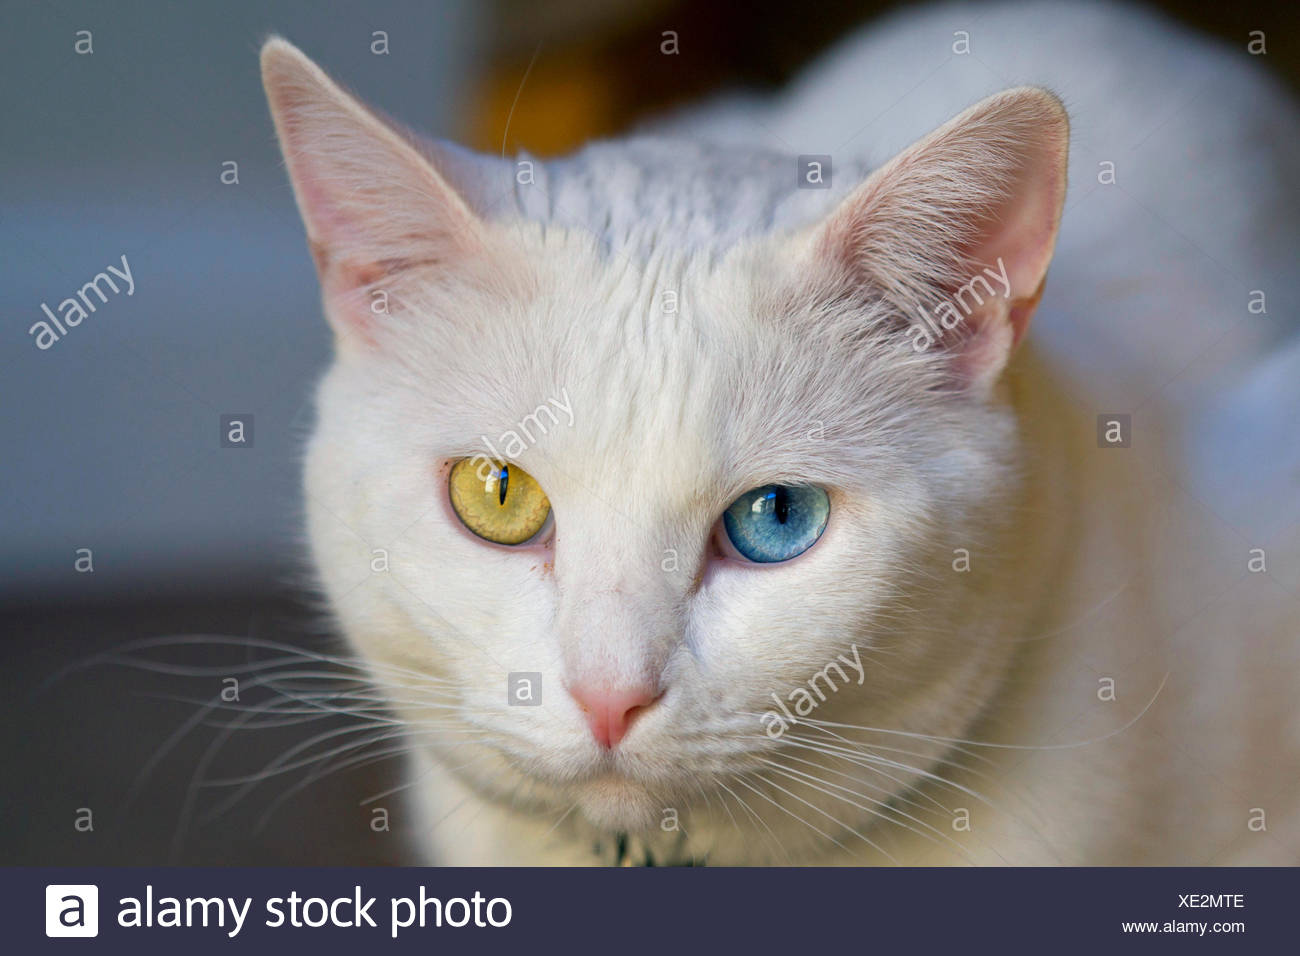 7c827004dd Odd Eyed Stock Photos   Odd Eyed Stock Images - Alamy